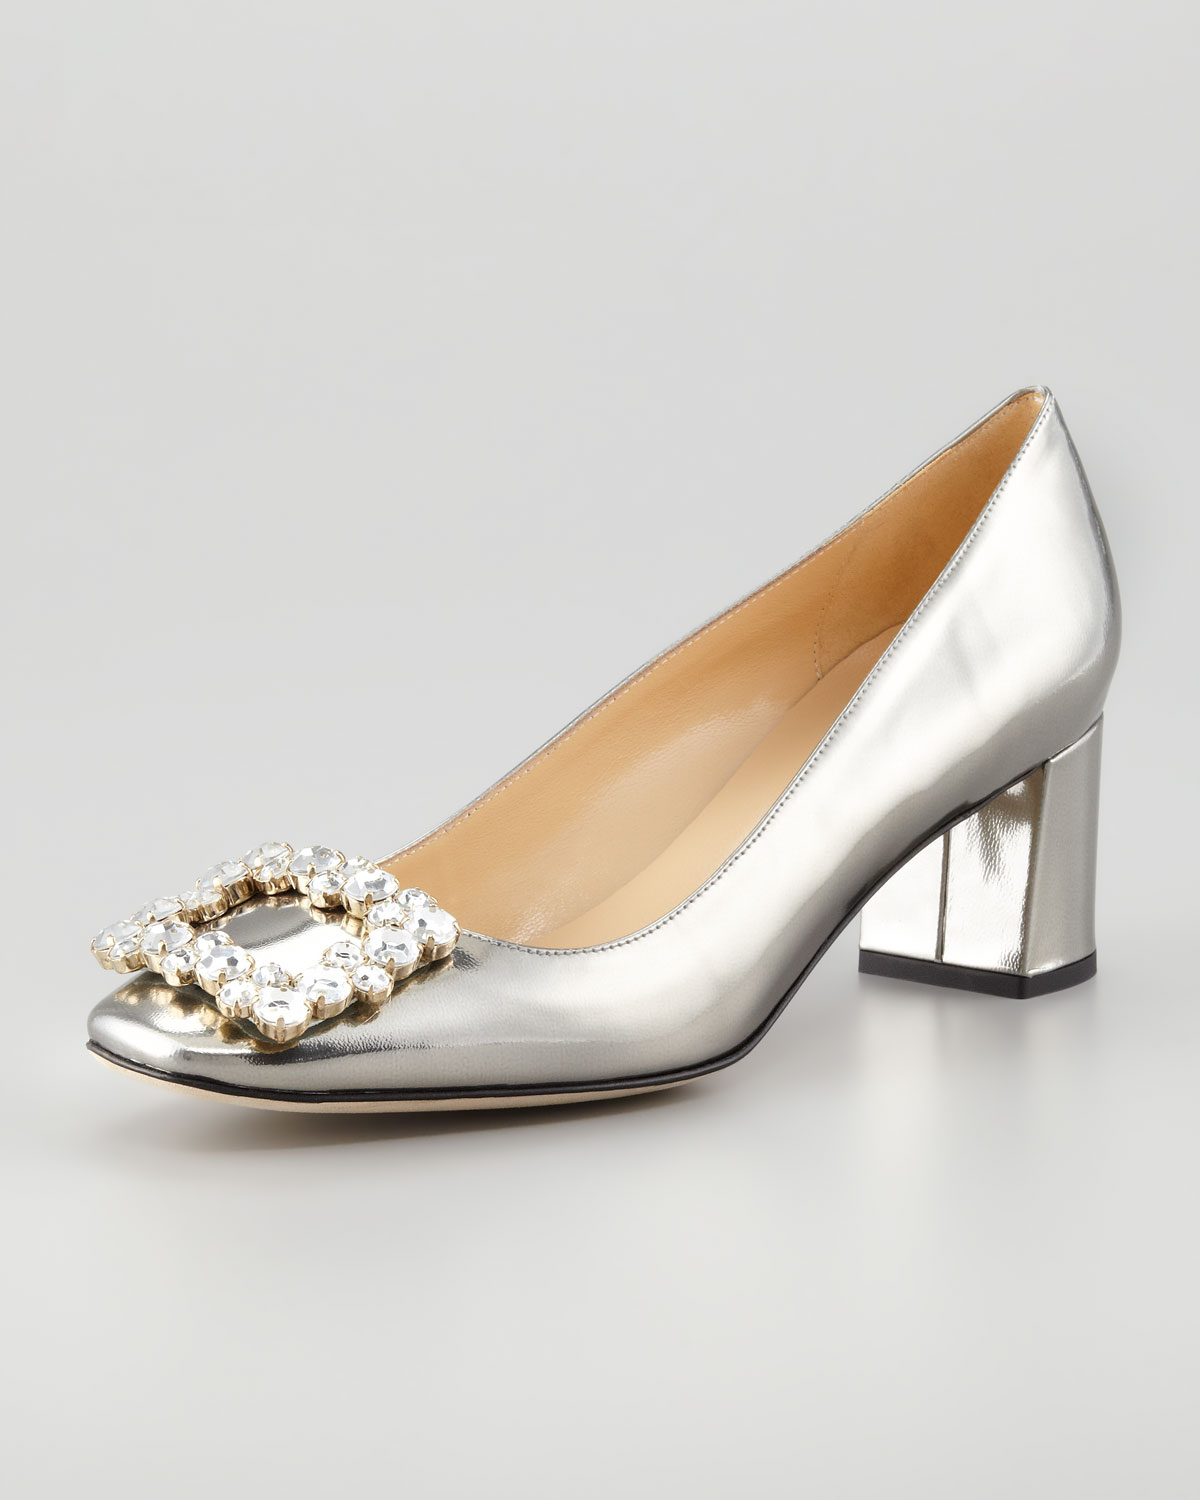 Silver Low Heel Pumps - Is Heel